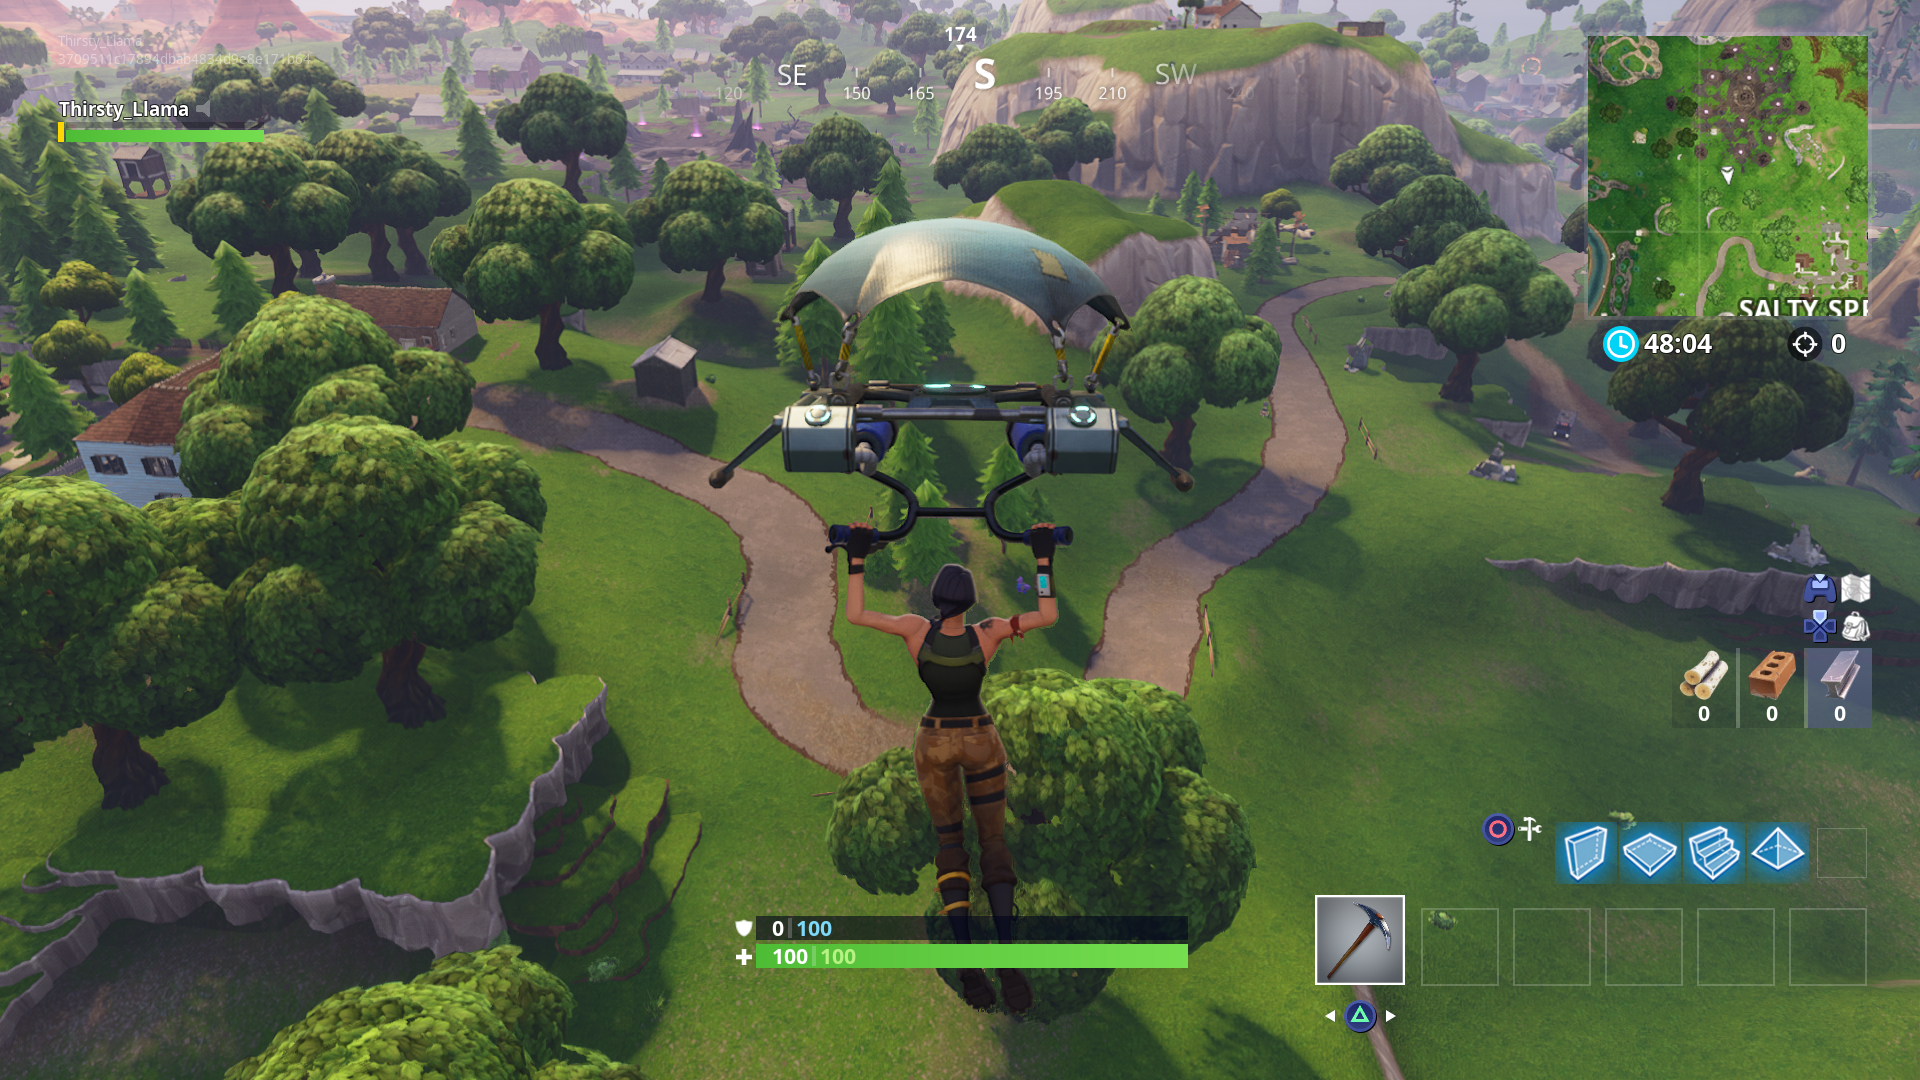 Fortnite: consume five apples - where to find apples on ...